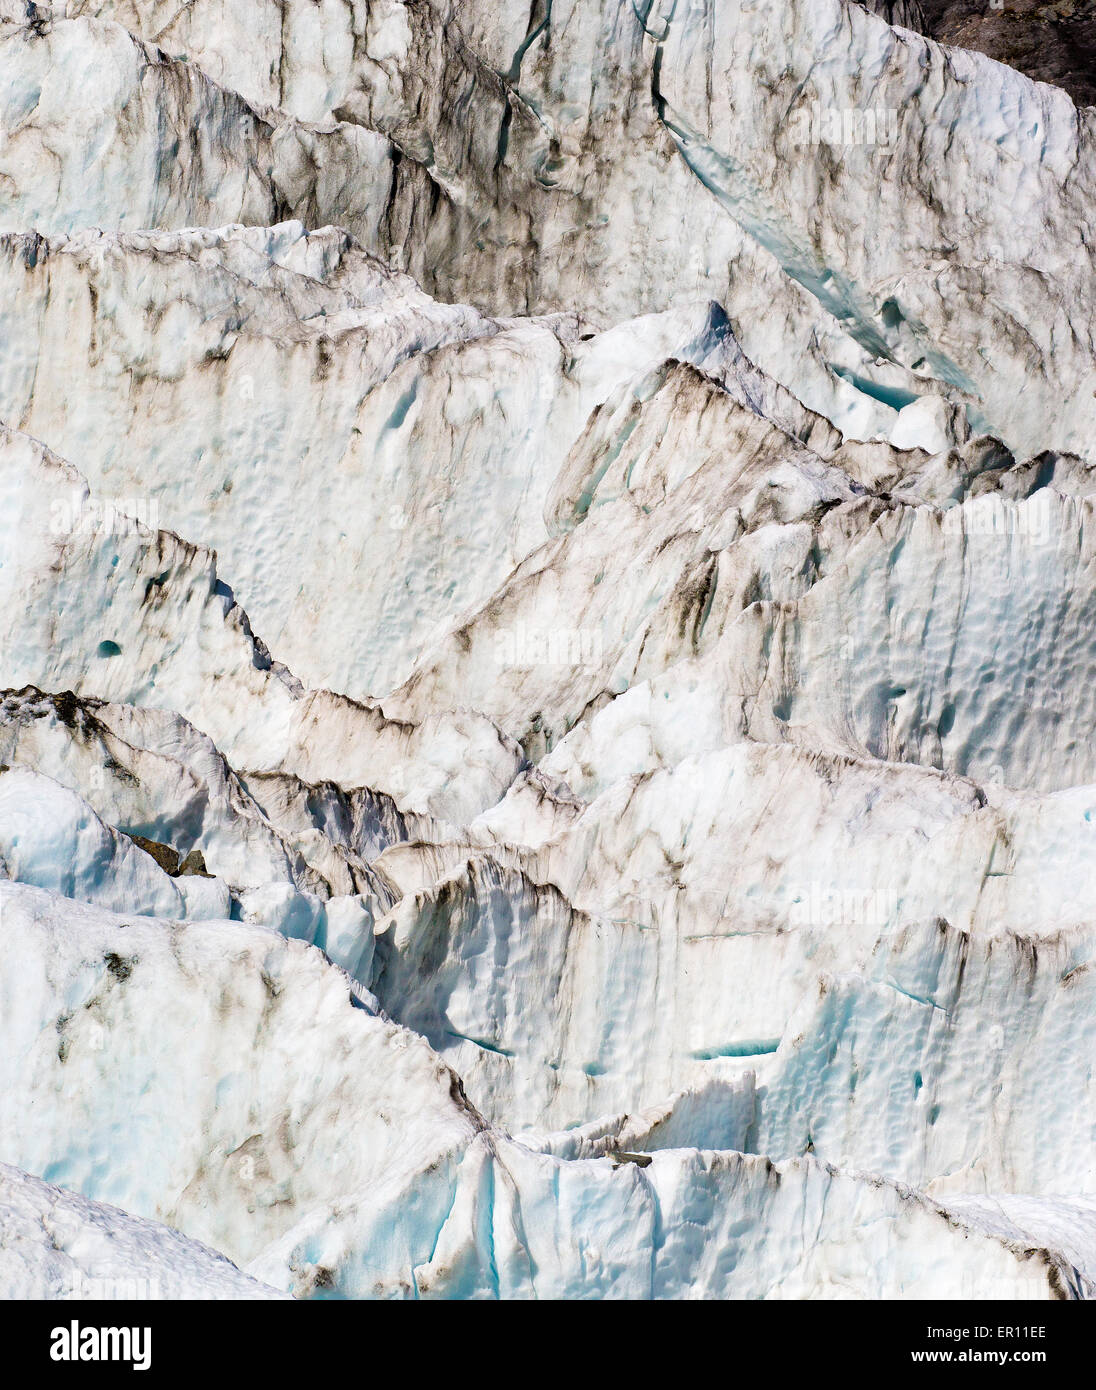 Patterns of eroded rock debris in large blocks of blue ice on the lateral section of Fox Glacier in South Island - Stock Image